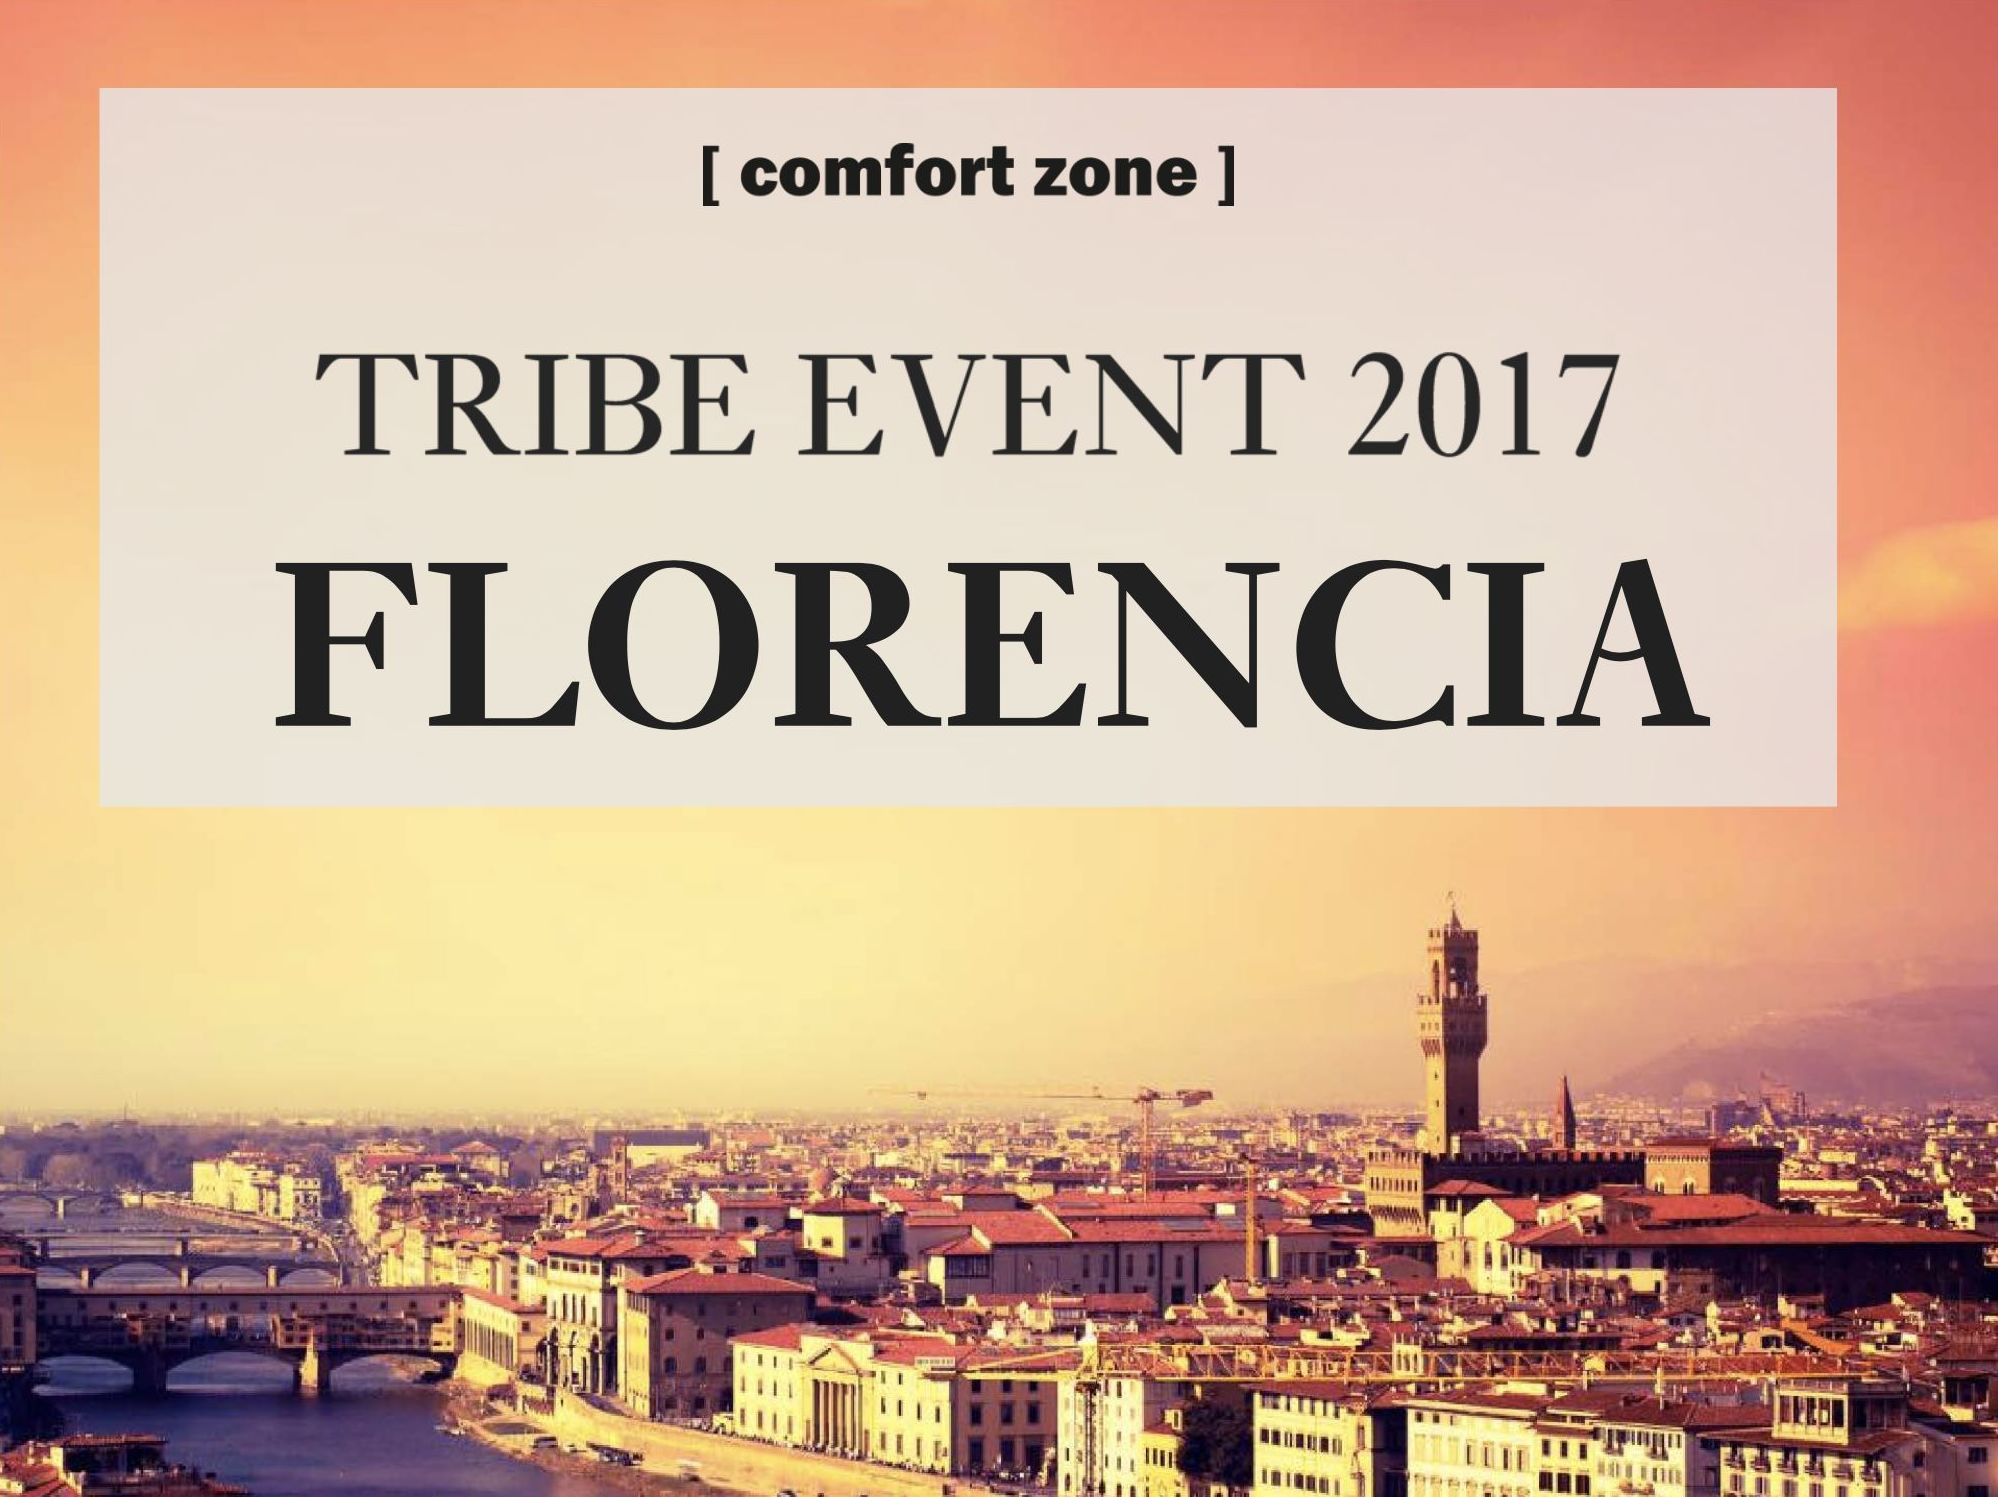 Tribe Event 2017 Florencia